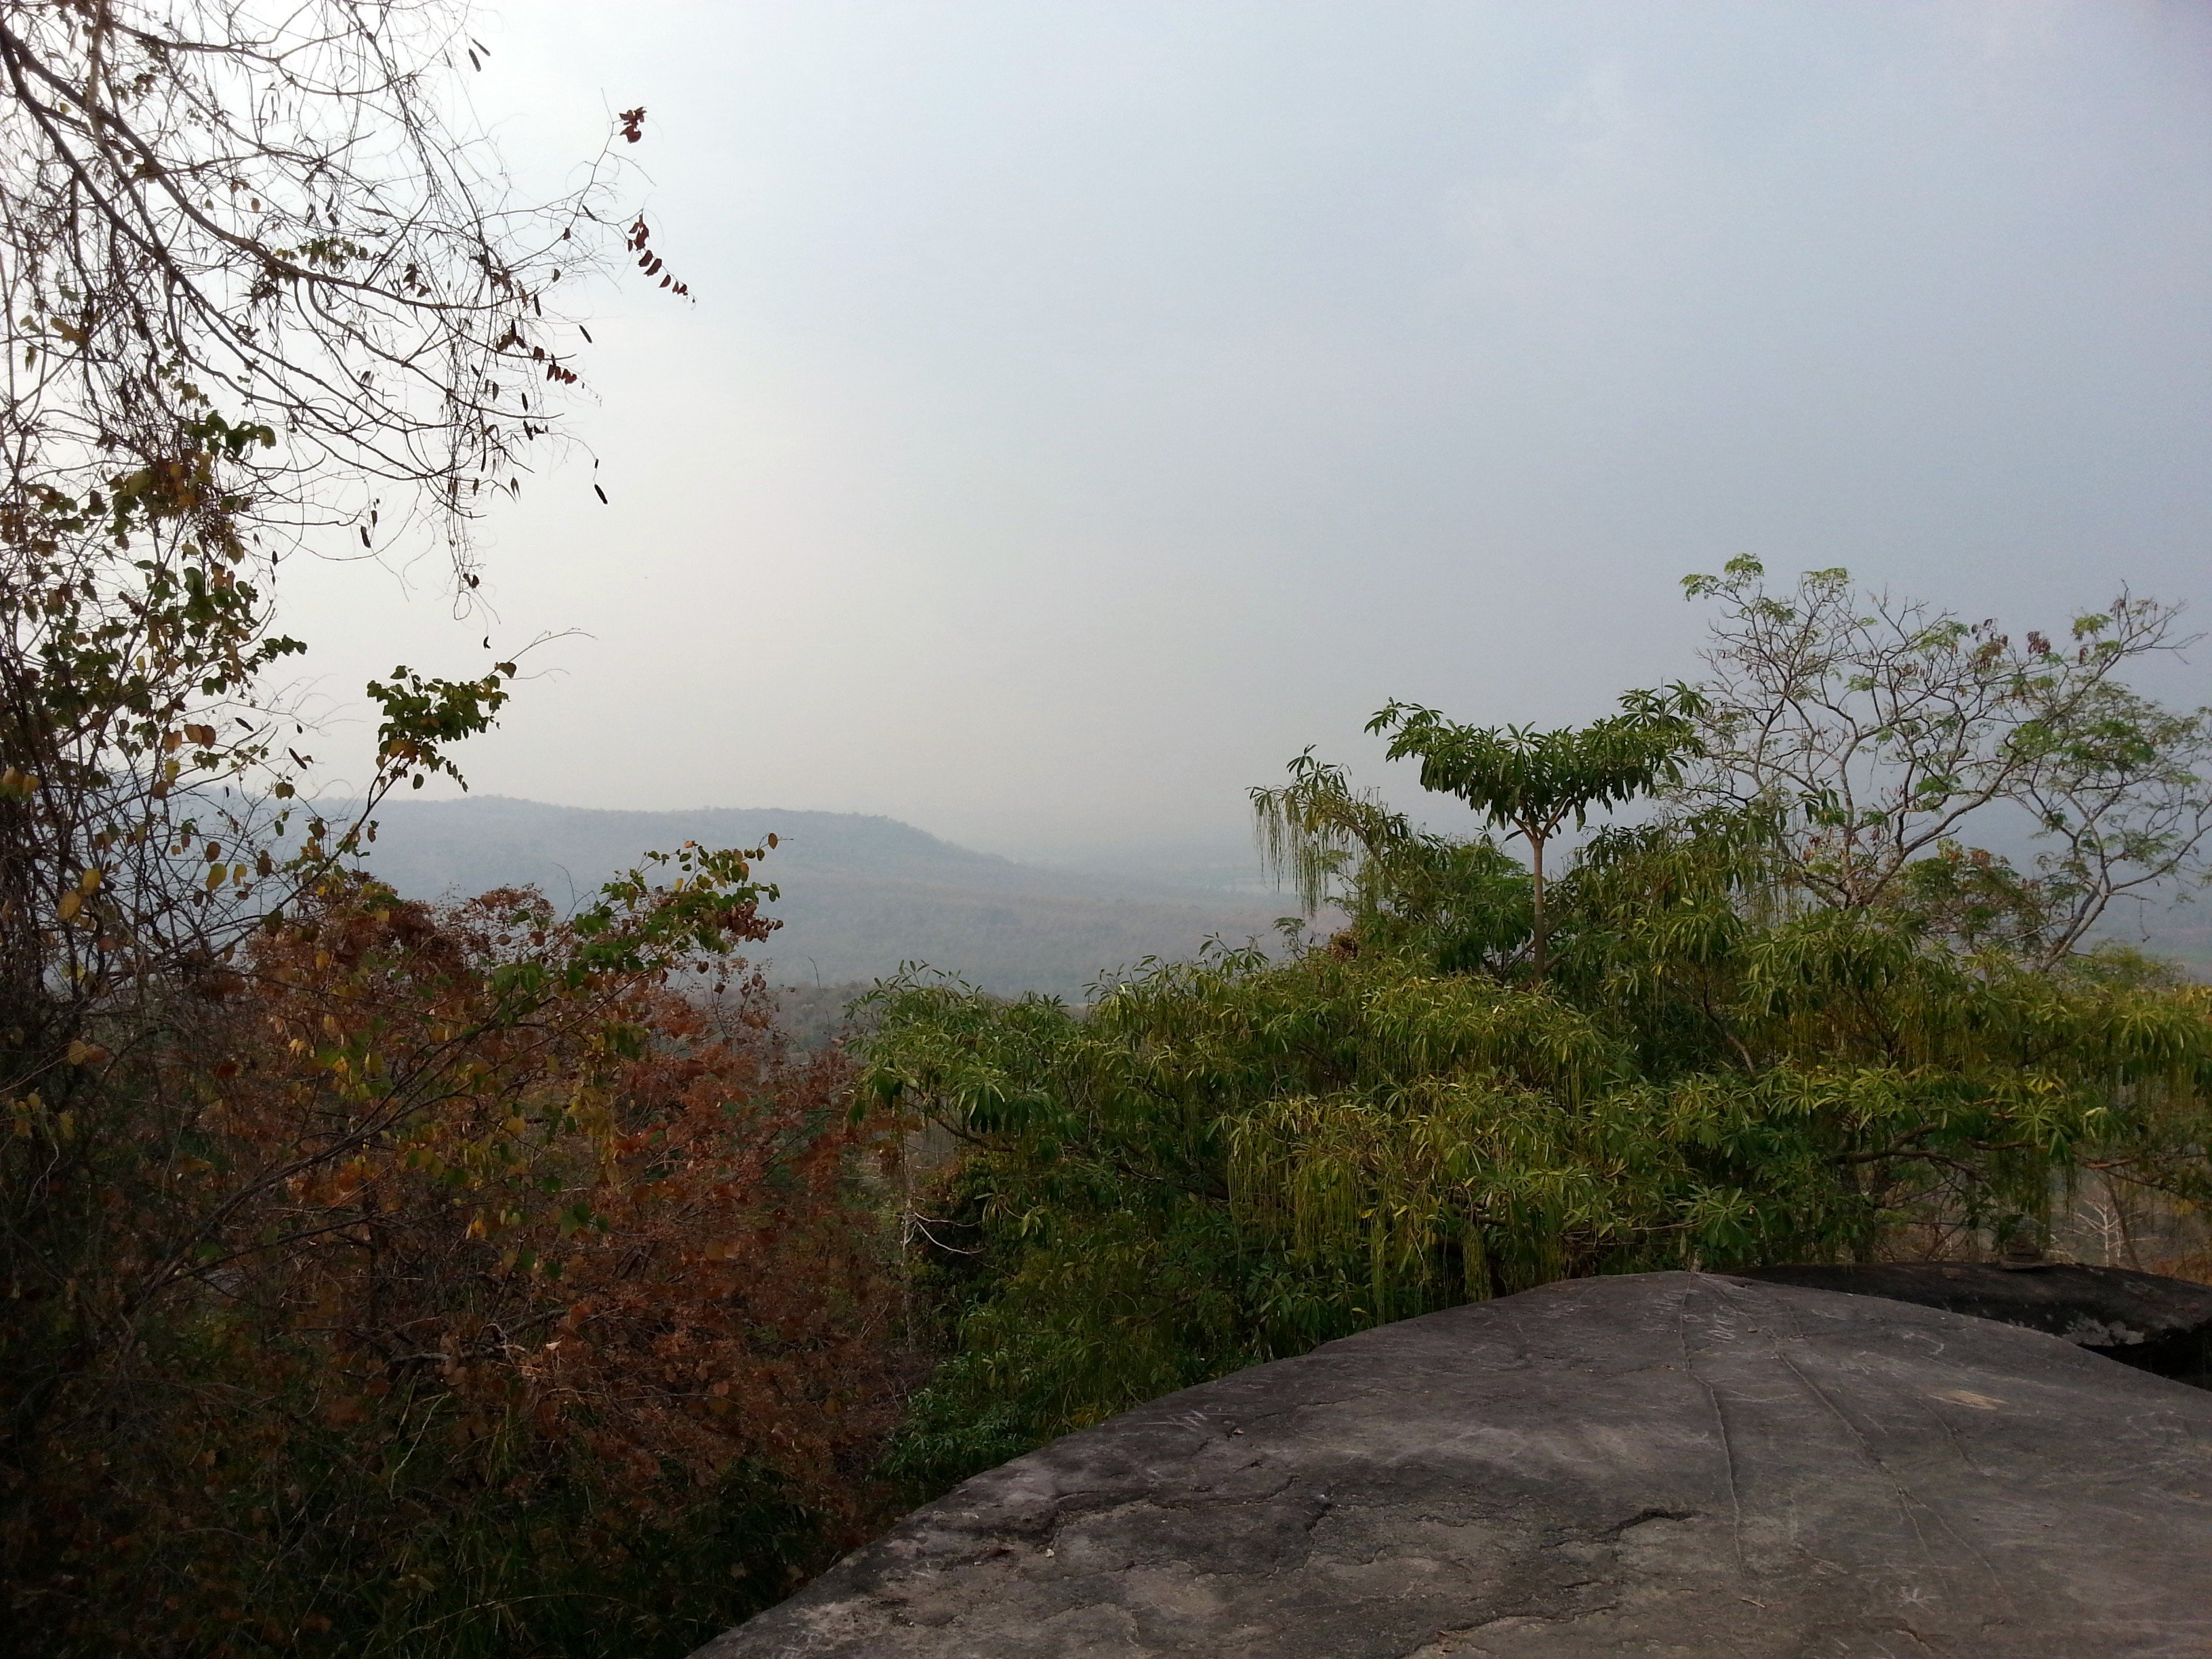 Viewpoint at Wat Tham Pha Daen